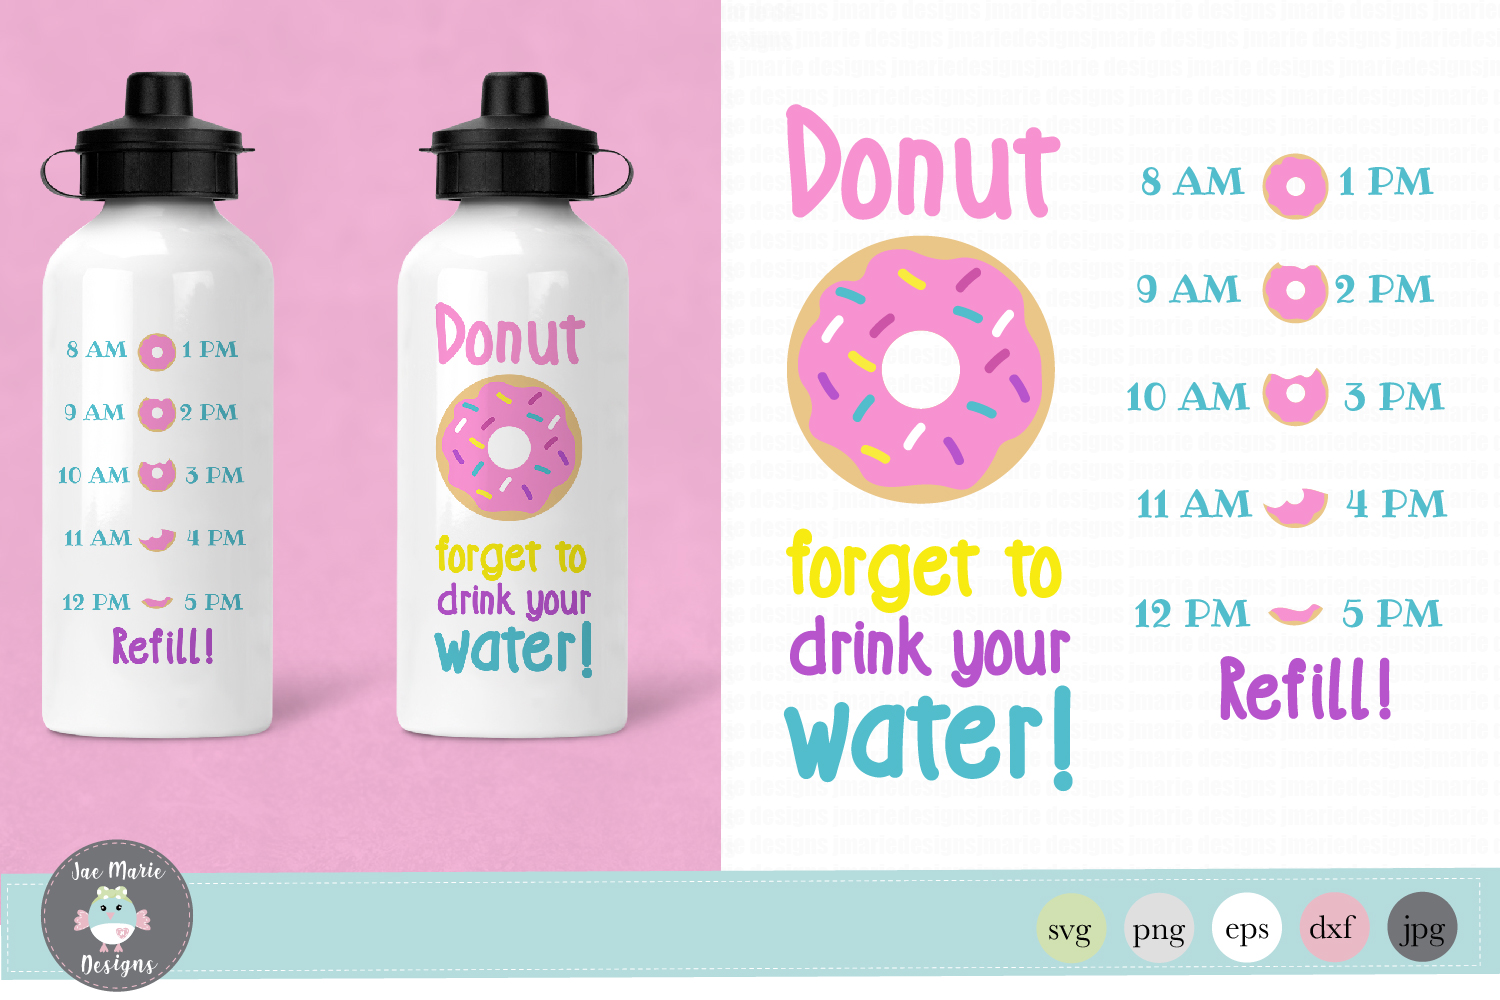 Download Free Donut Forget To Drink Your Water Graphic By Thejaemarie for Cricut Explore, Silhouette and other cutting machines.